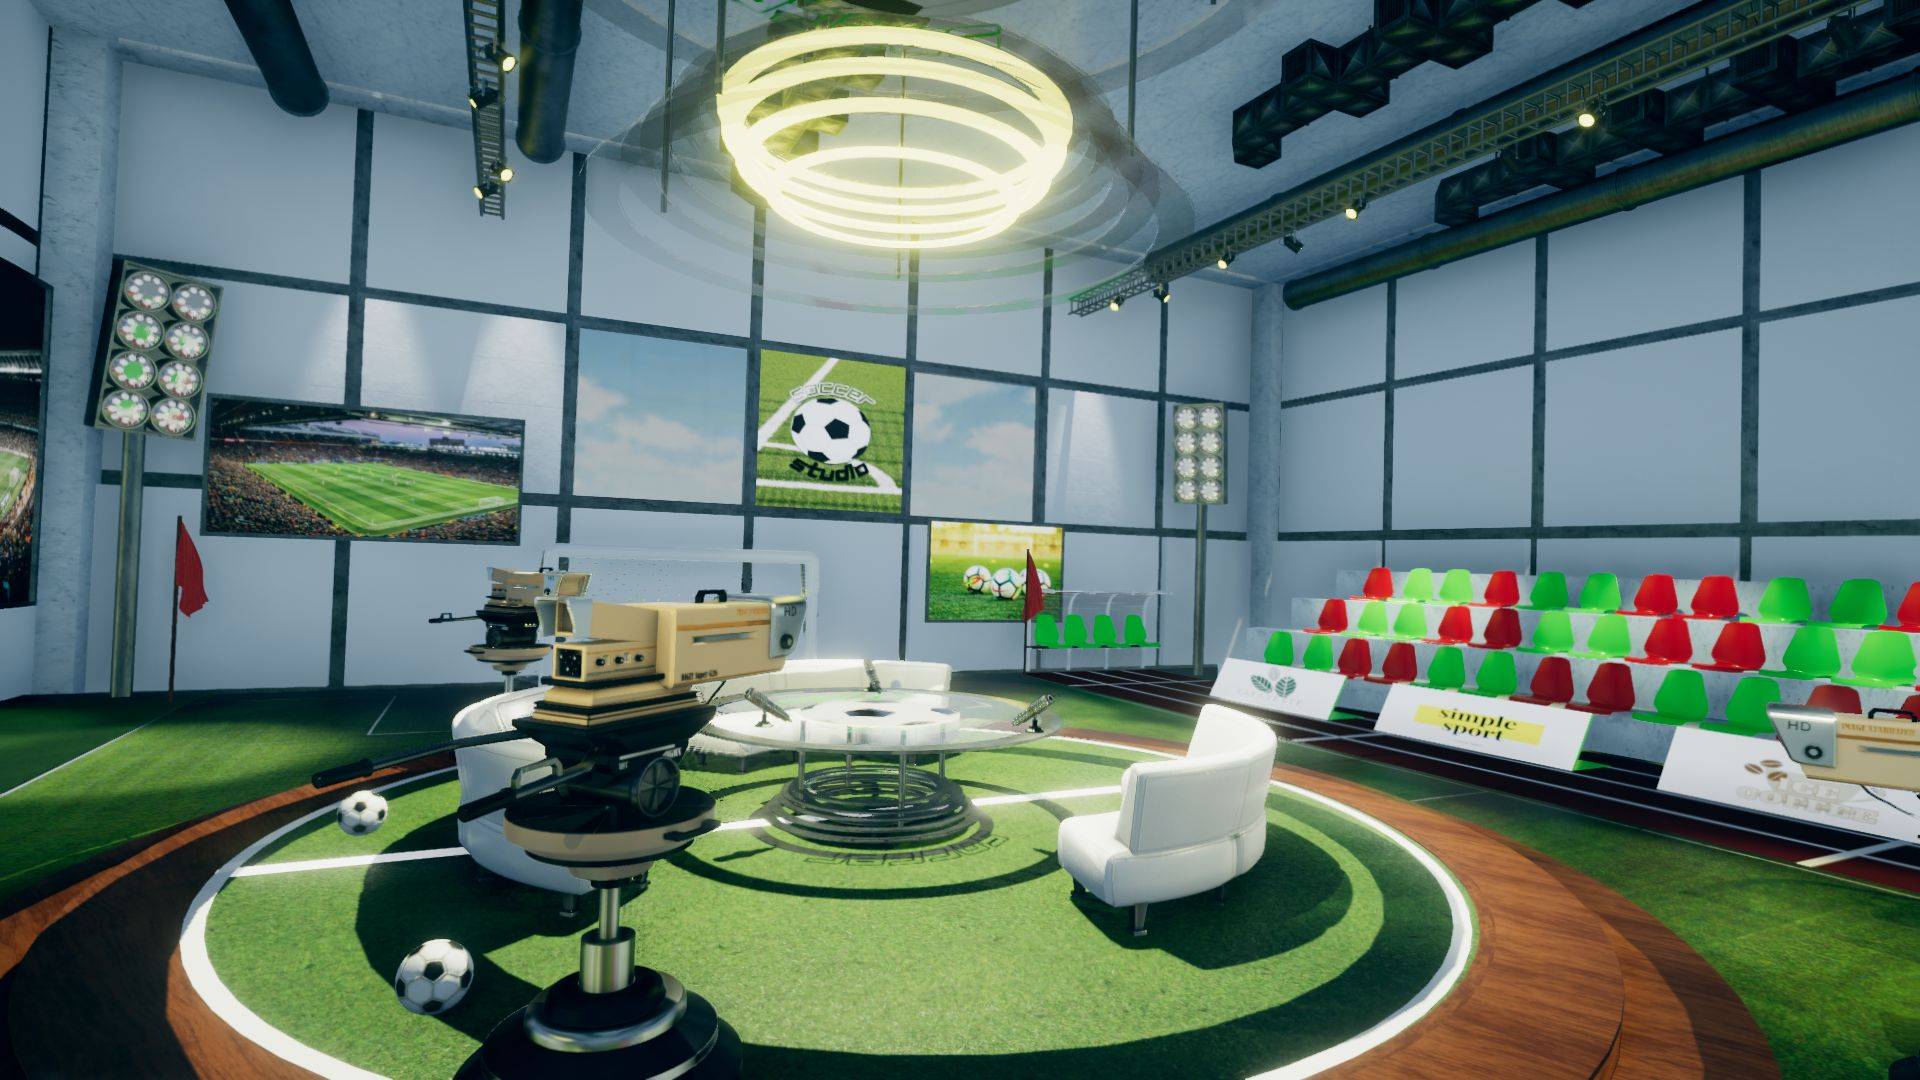 An image showing Soccer Studio Set asset pack, created with Unity Engine.